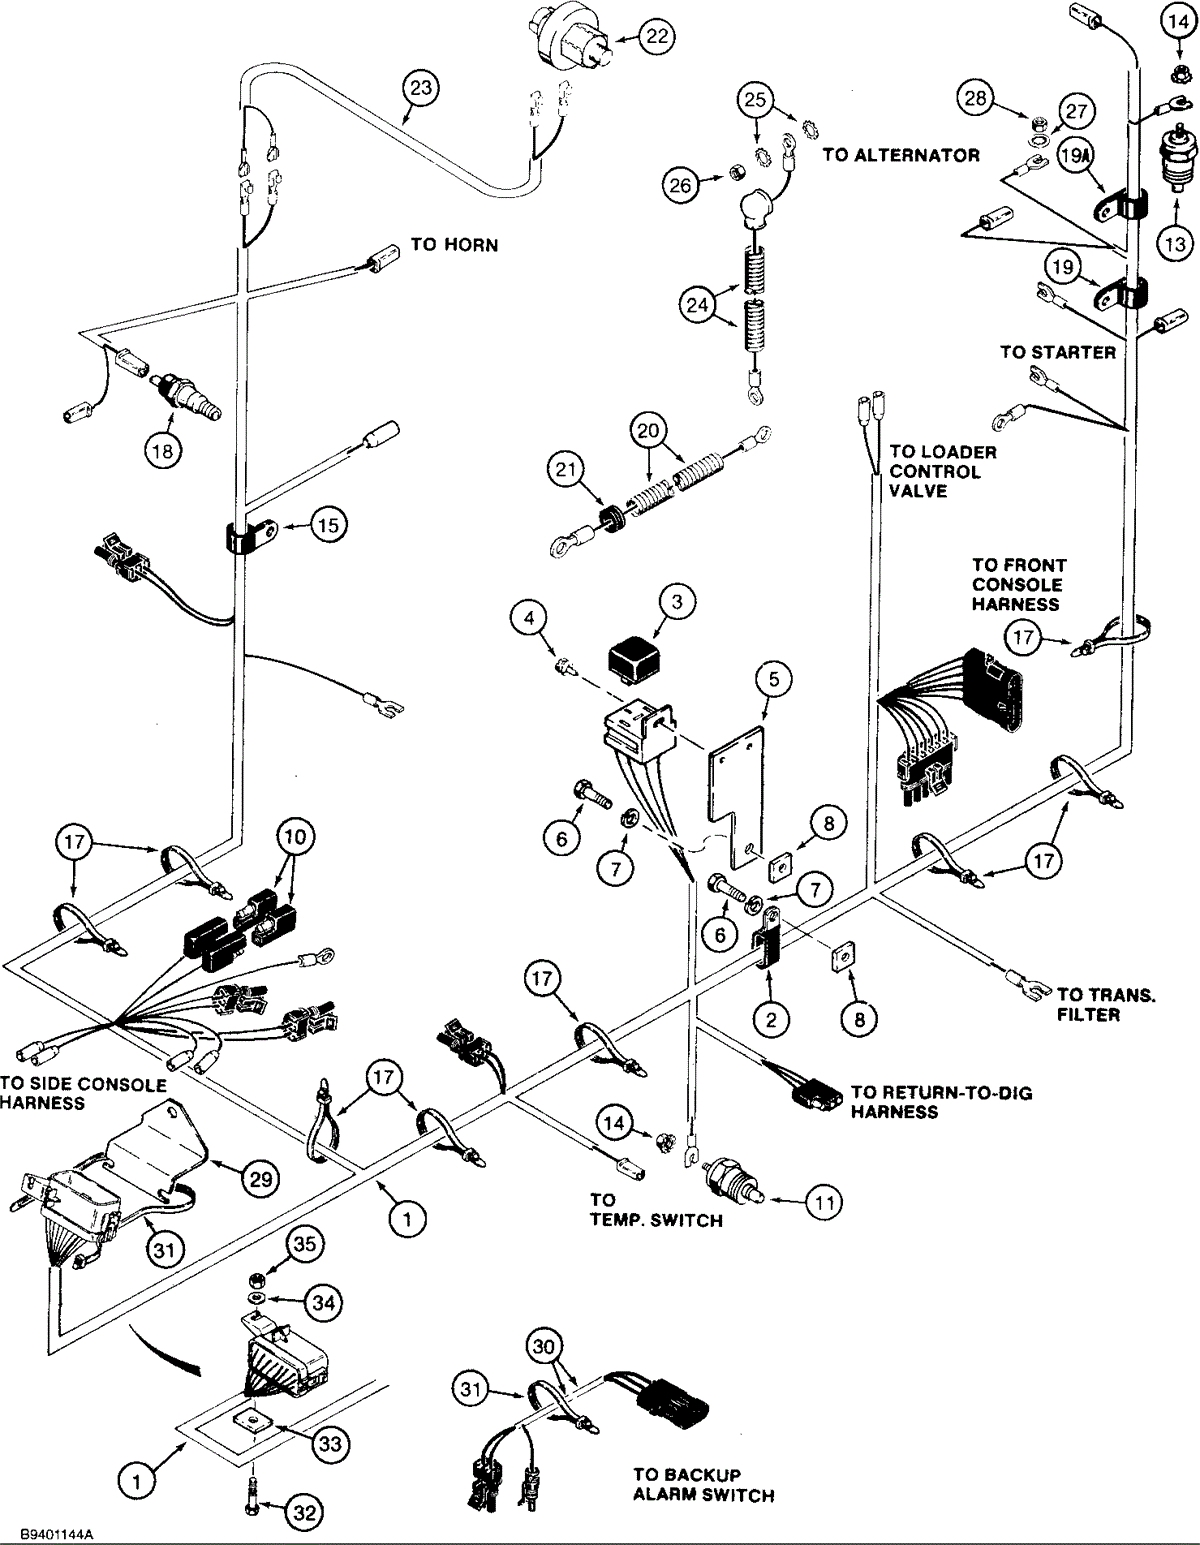 Backhoe 580 E Wiring Diagram Free Apktodownload